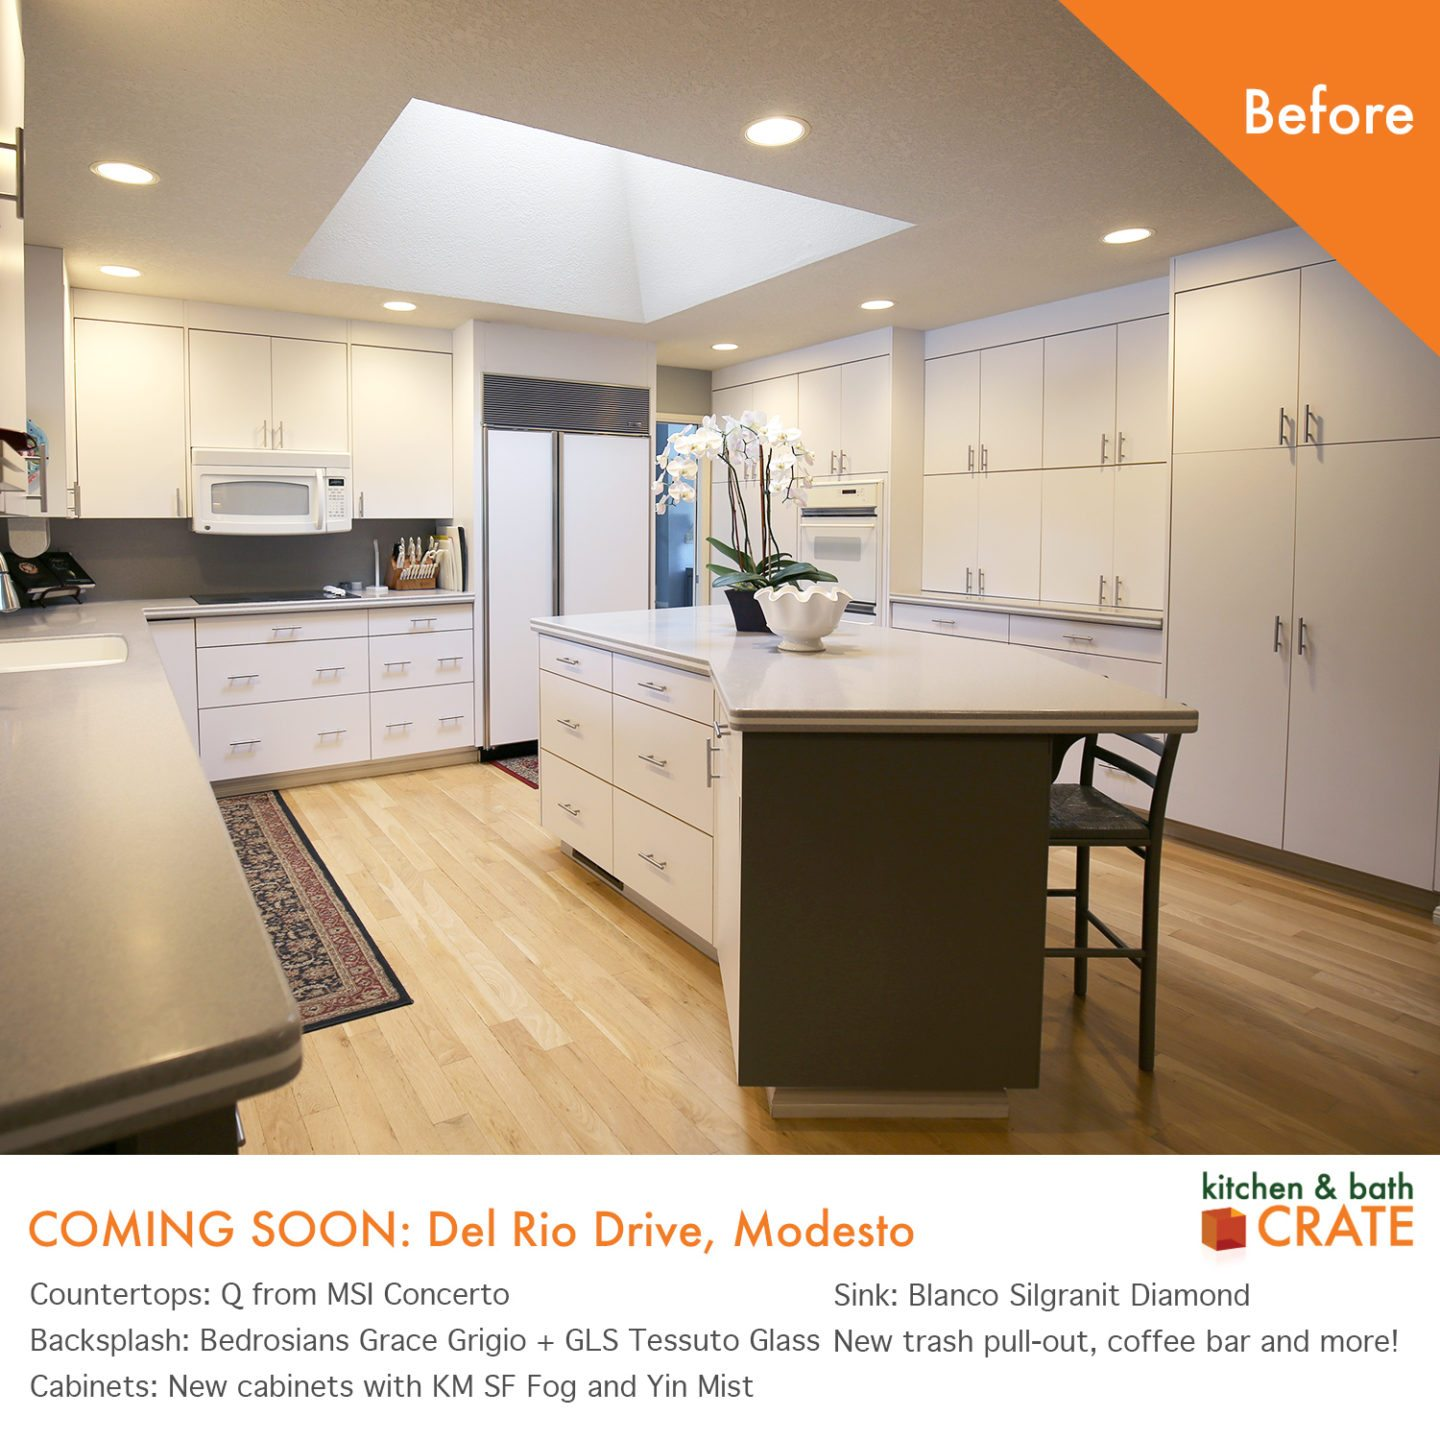 With Our KitchenCRATE Custom Product, Our Designers Will Work With The  Homeowner To Design Their New Kitchen And Provide A Rendering Before The  Project Is ...